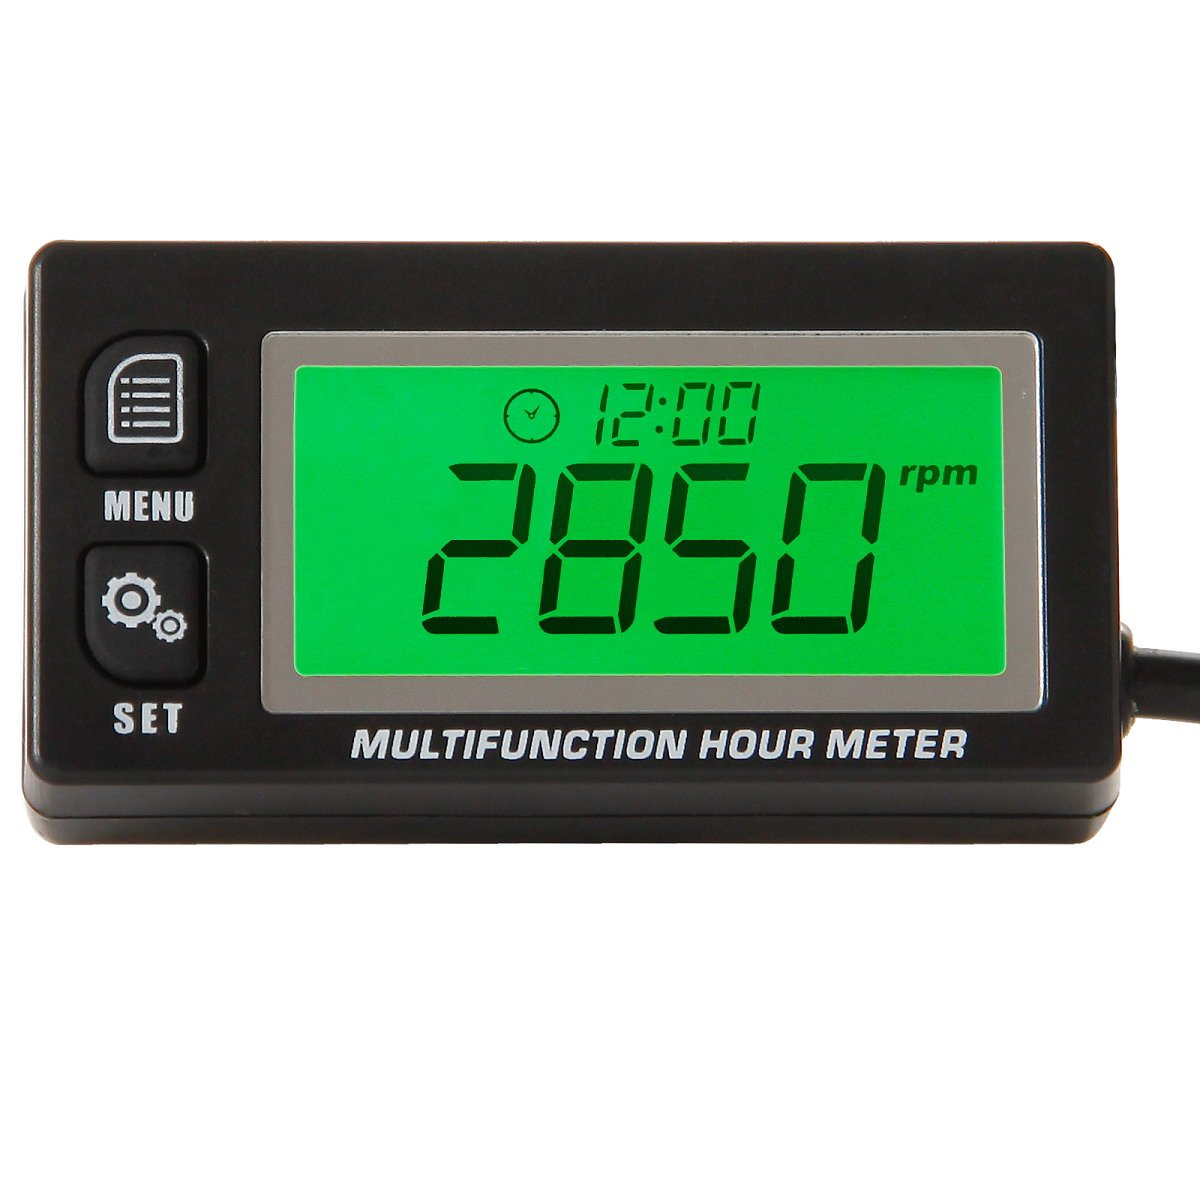 Searon Multifunction Hour Meter Tachometer Voltmeter with Clock 2 & 4 Stroke for Small Engine Boat Outboard Mercury Motocross Motorcycle Lawn Mower Generator